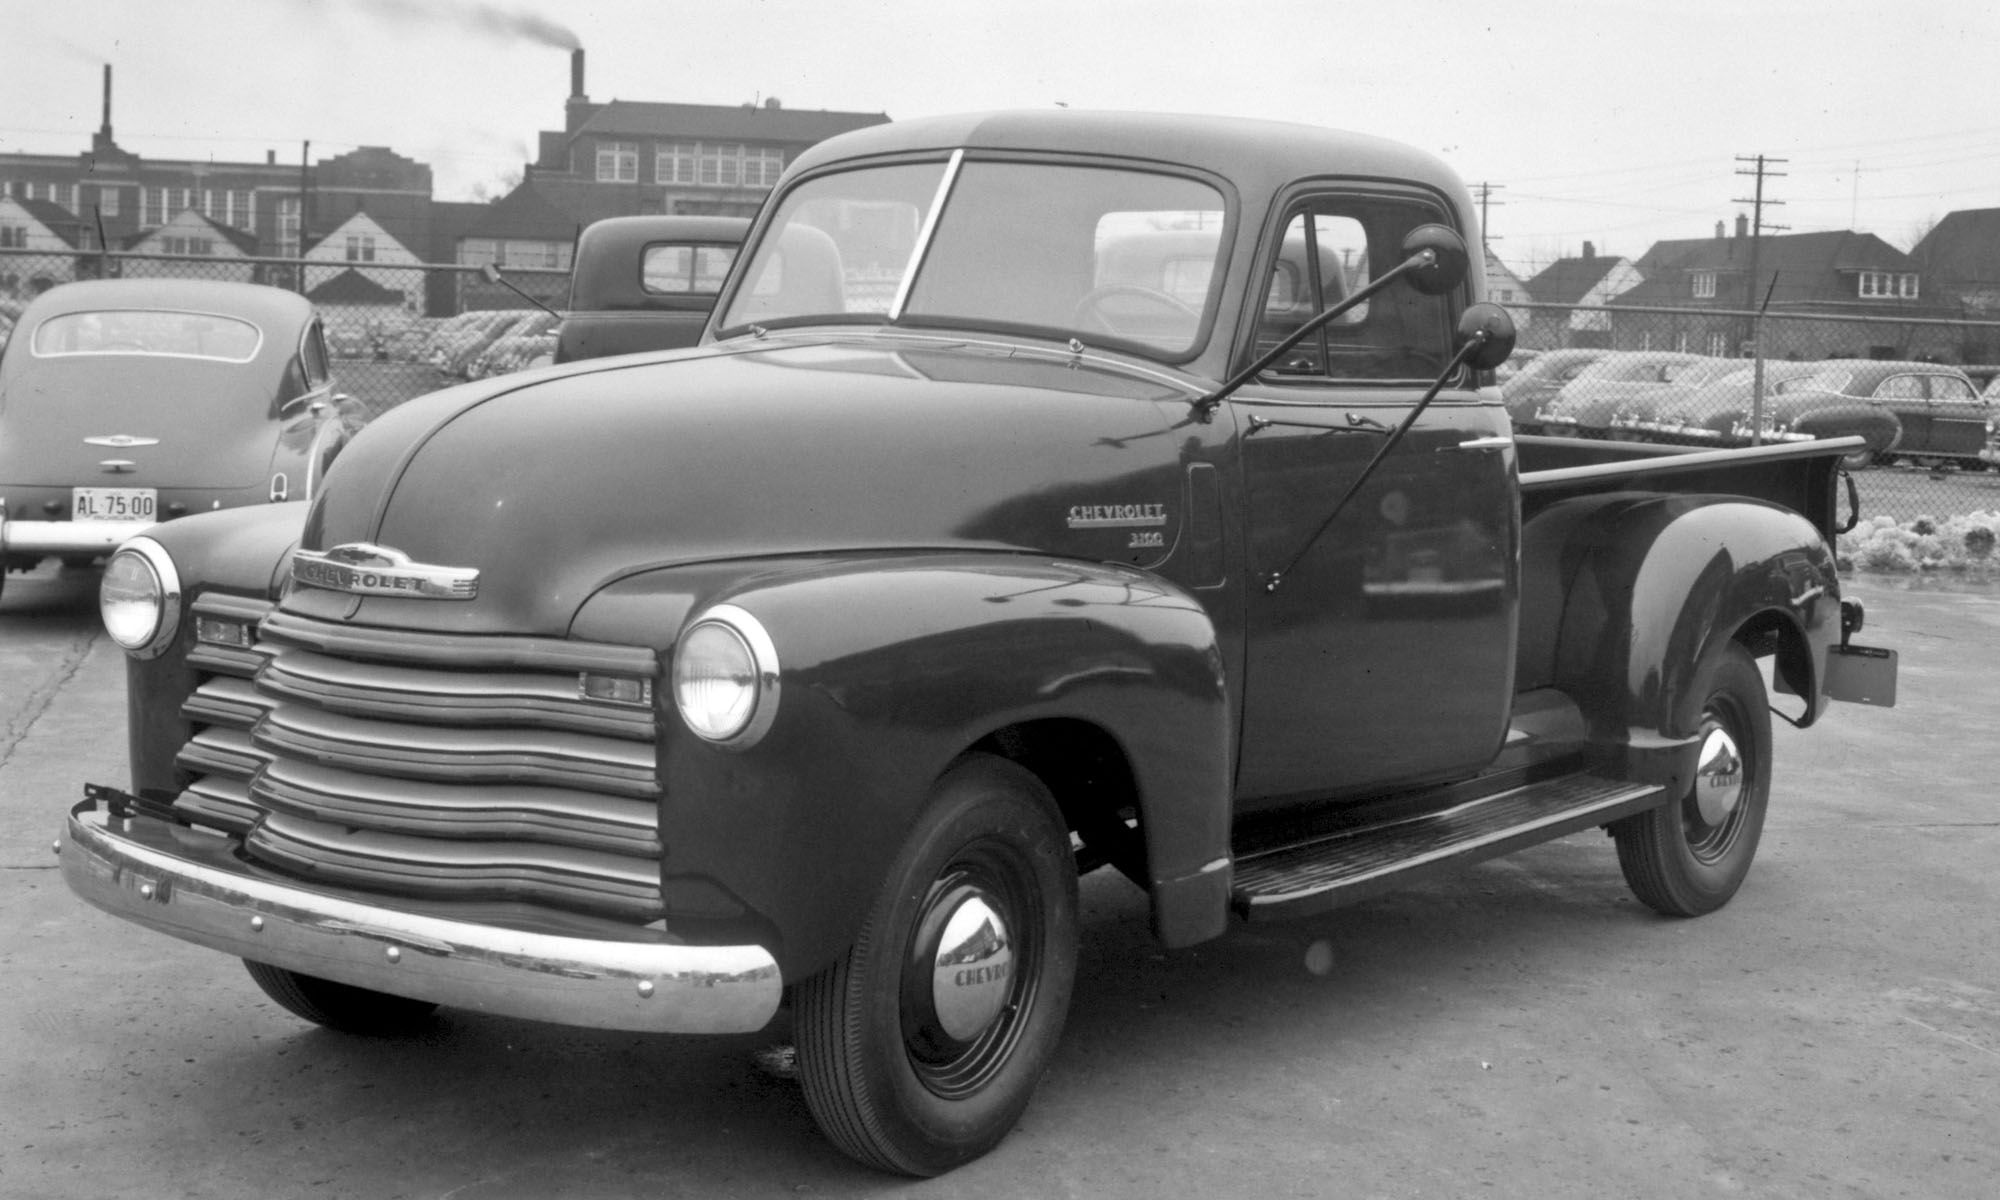 Red-hot pickups: Truckin\' with style | Motorized | Pinterest | Car ...